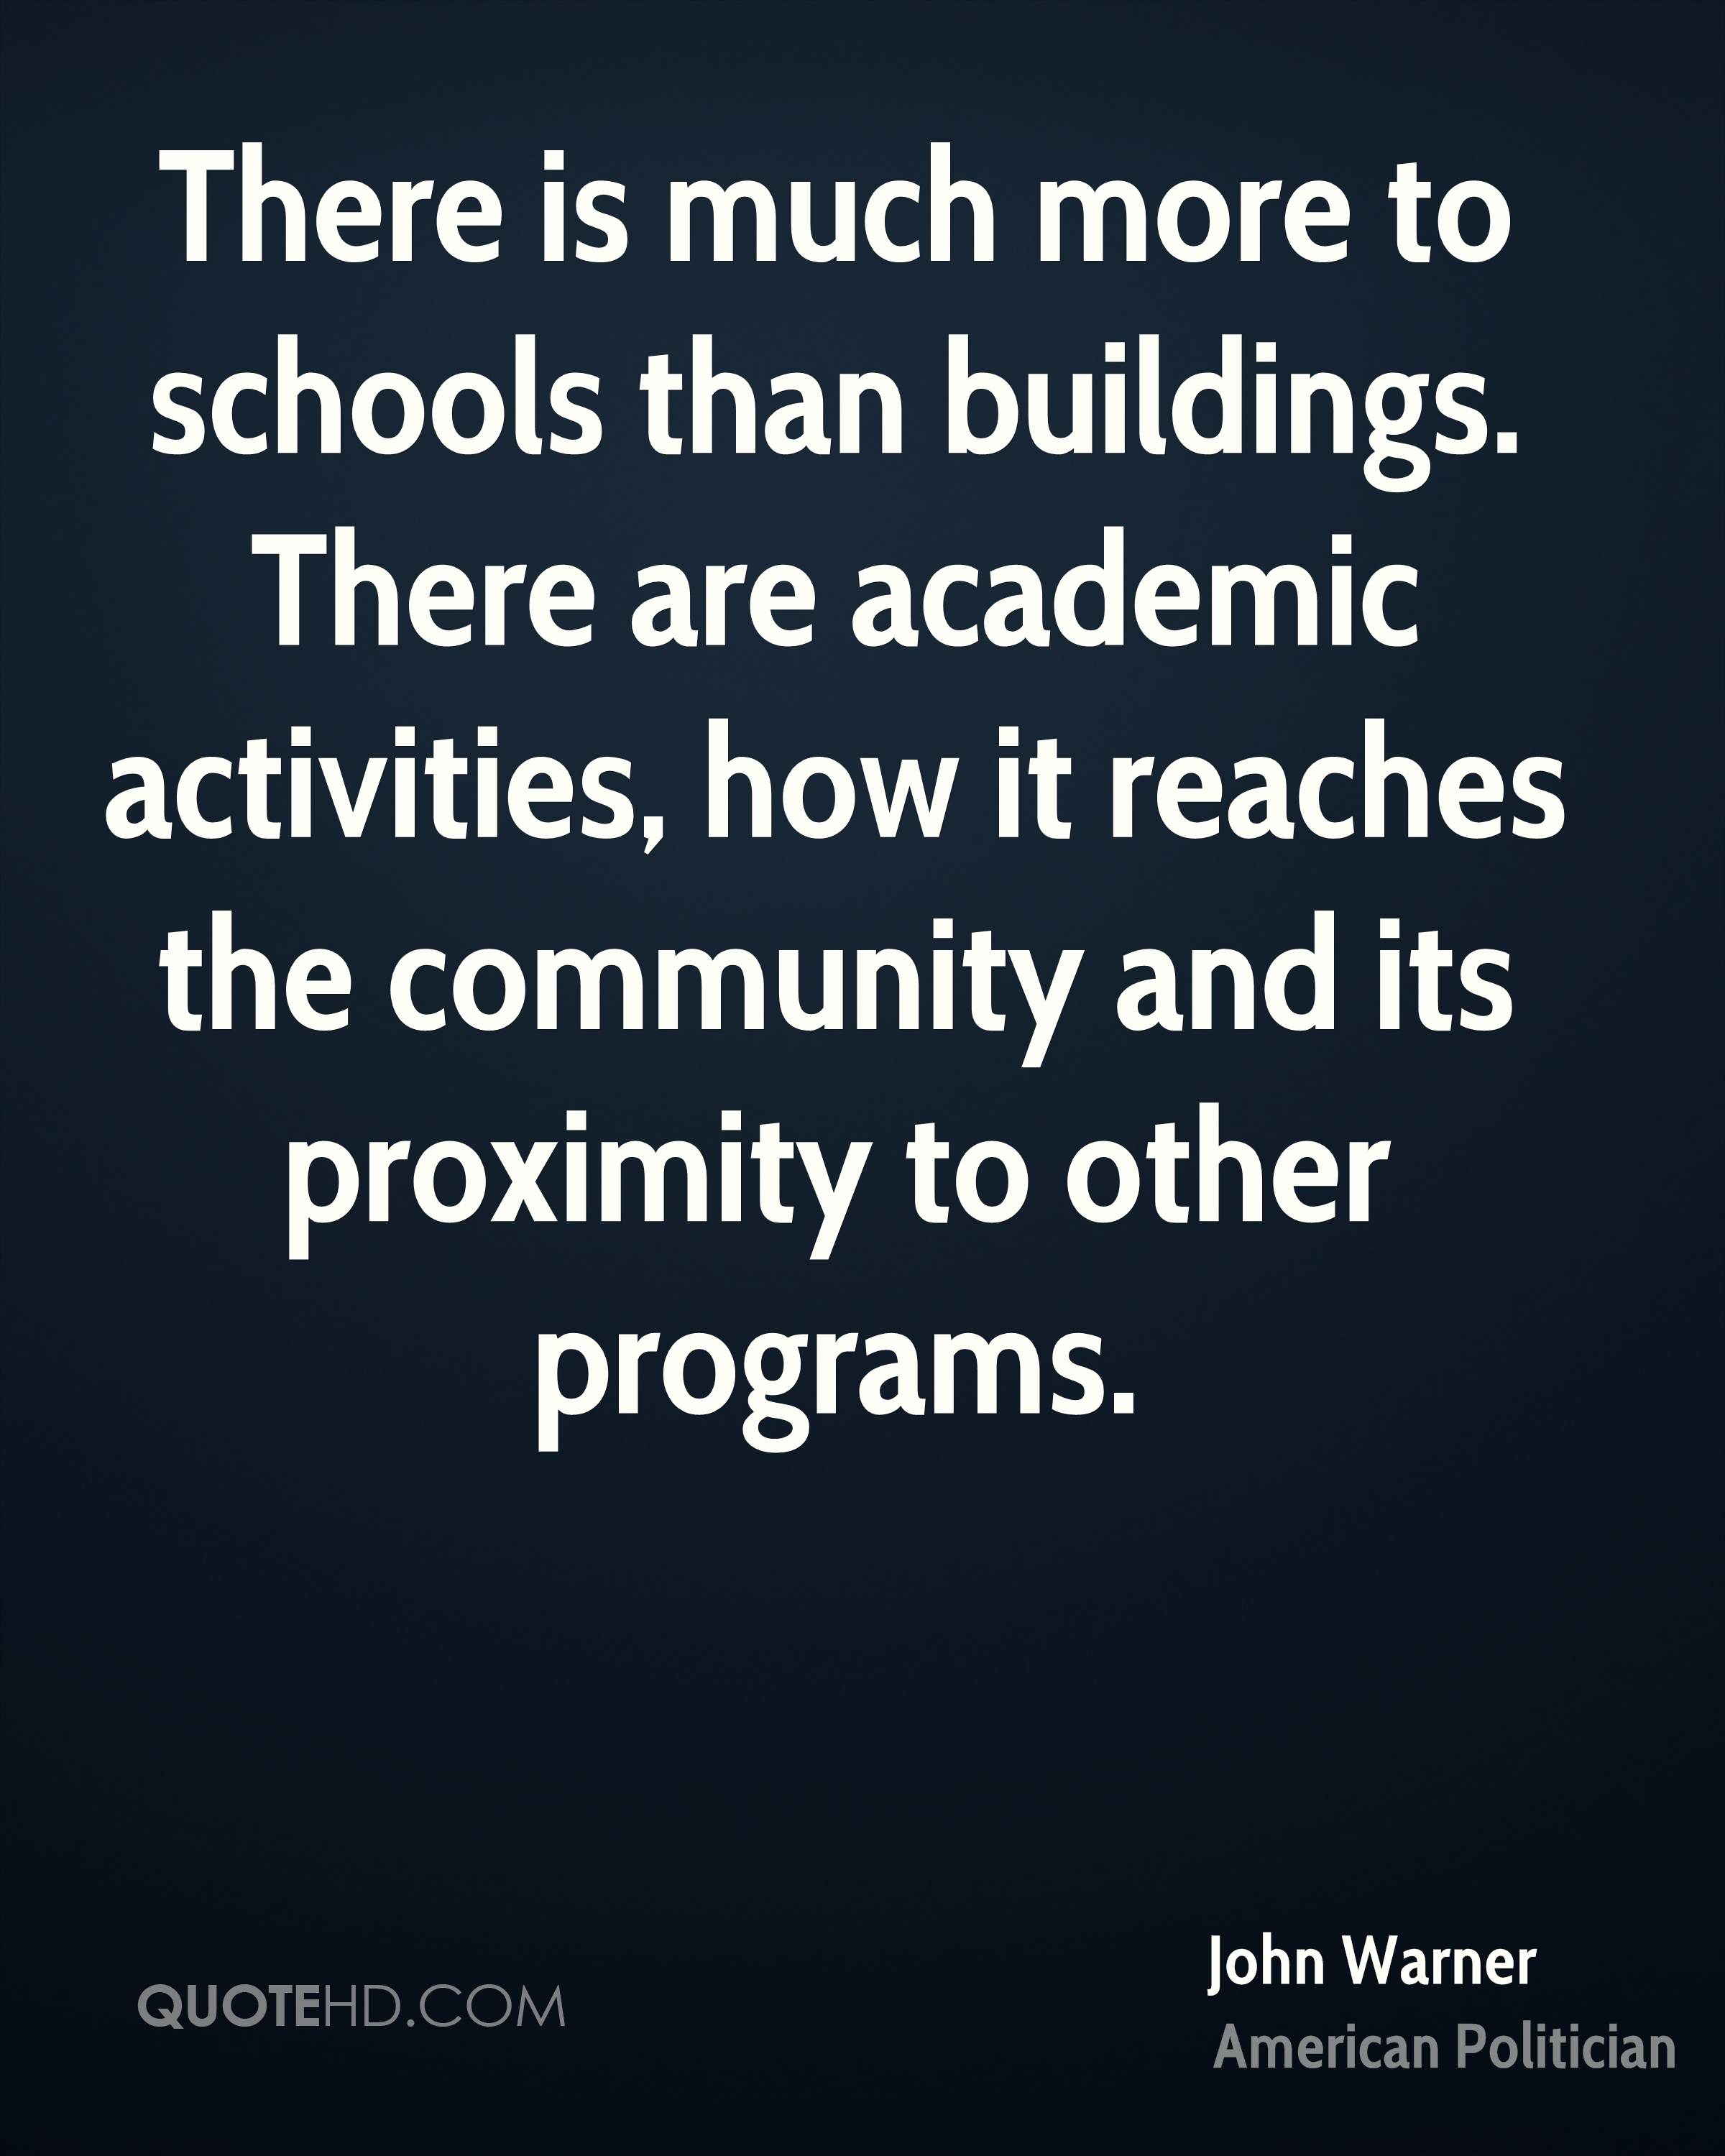 There is much more to schools than buildings. There are academic activities, how it reaches the community and its proximity to other programs.